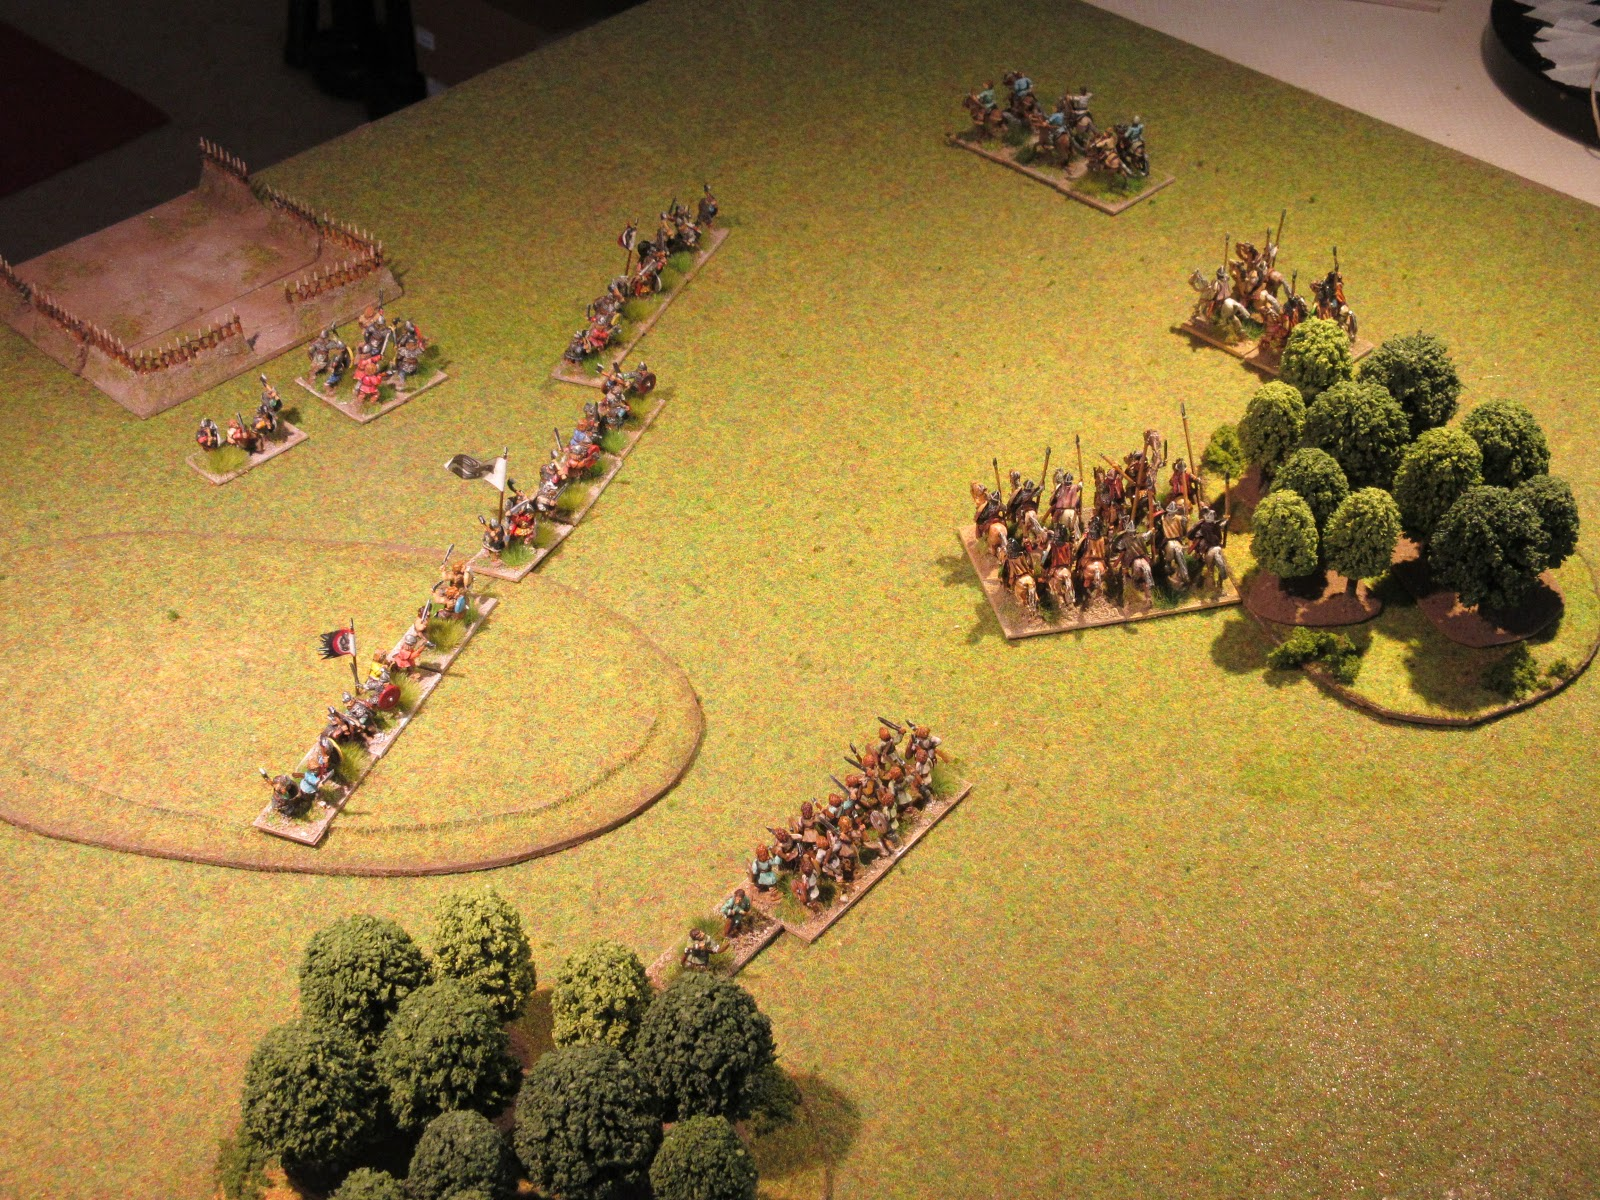 Storm within the Empire: 939 AD, refighting the Battle of